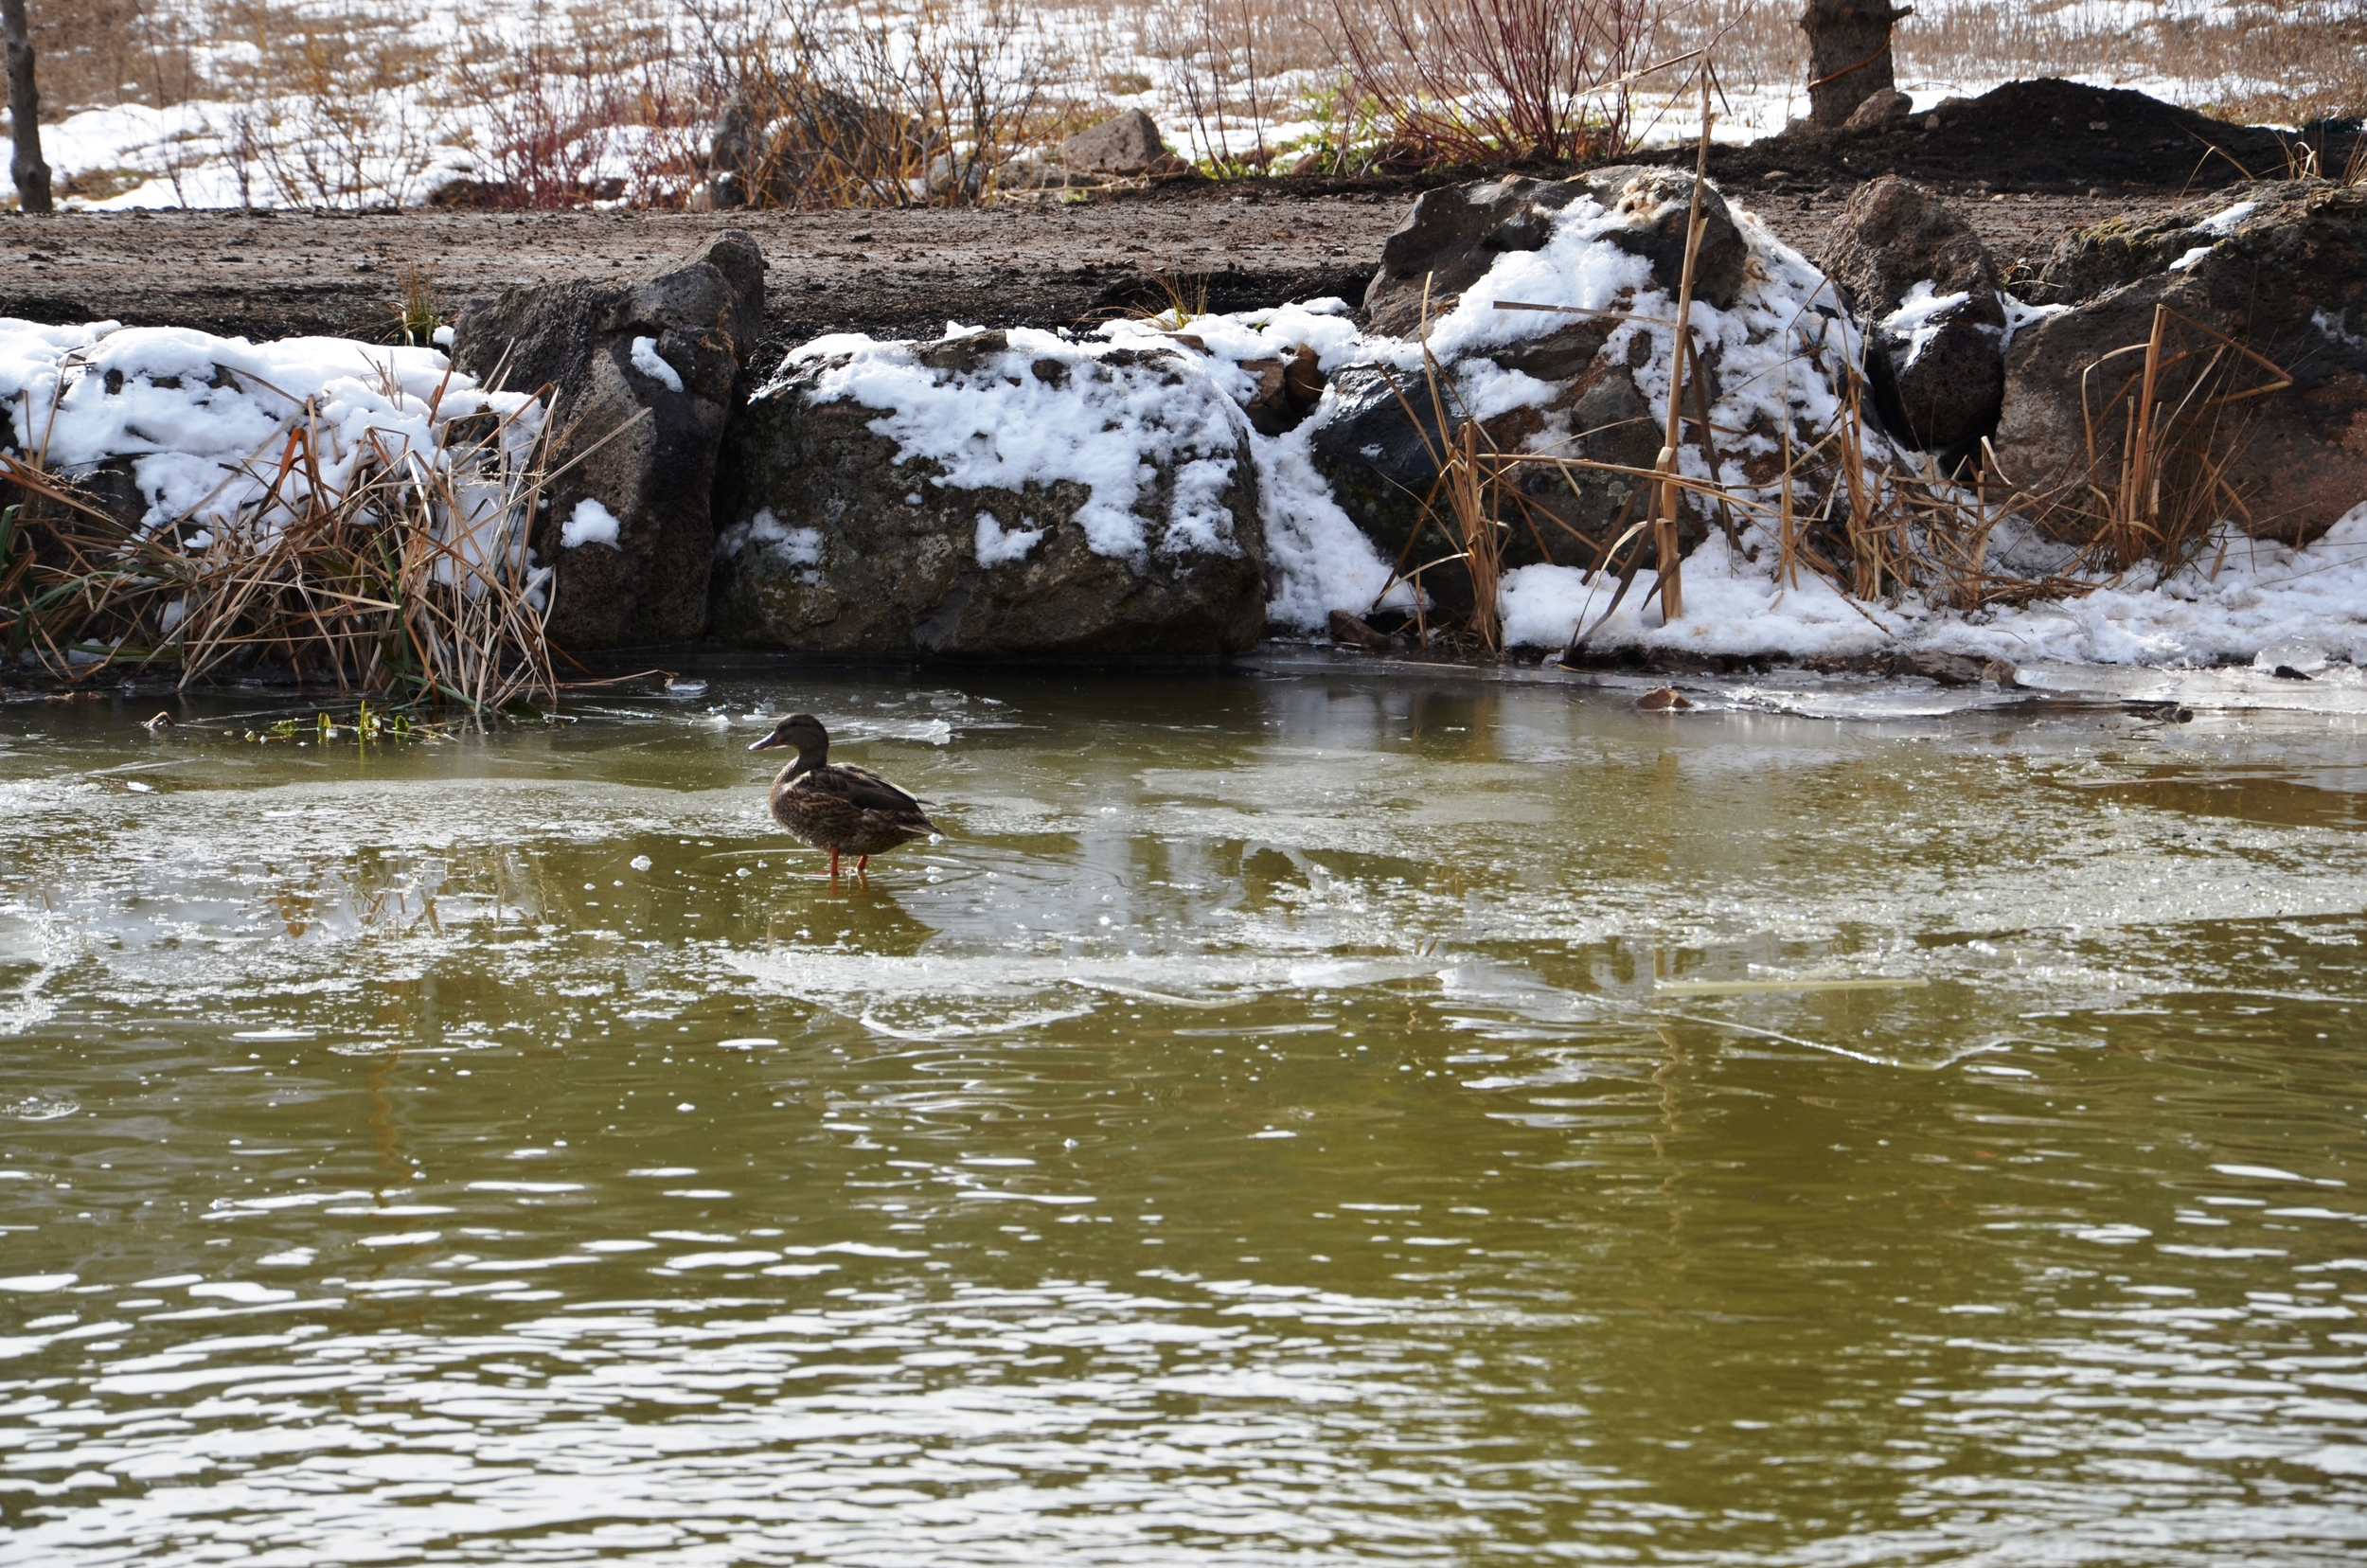 Ducks Enjoying the Half-Frozen Pond